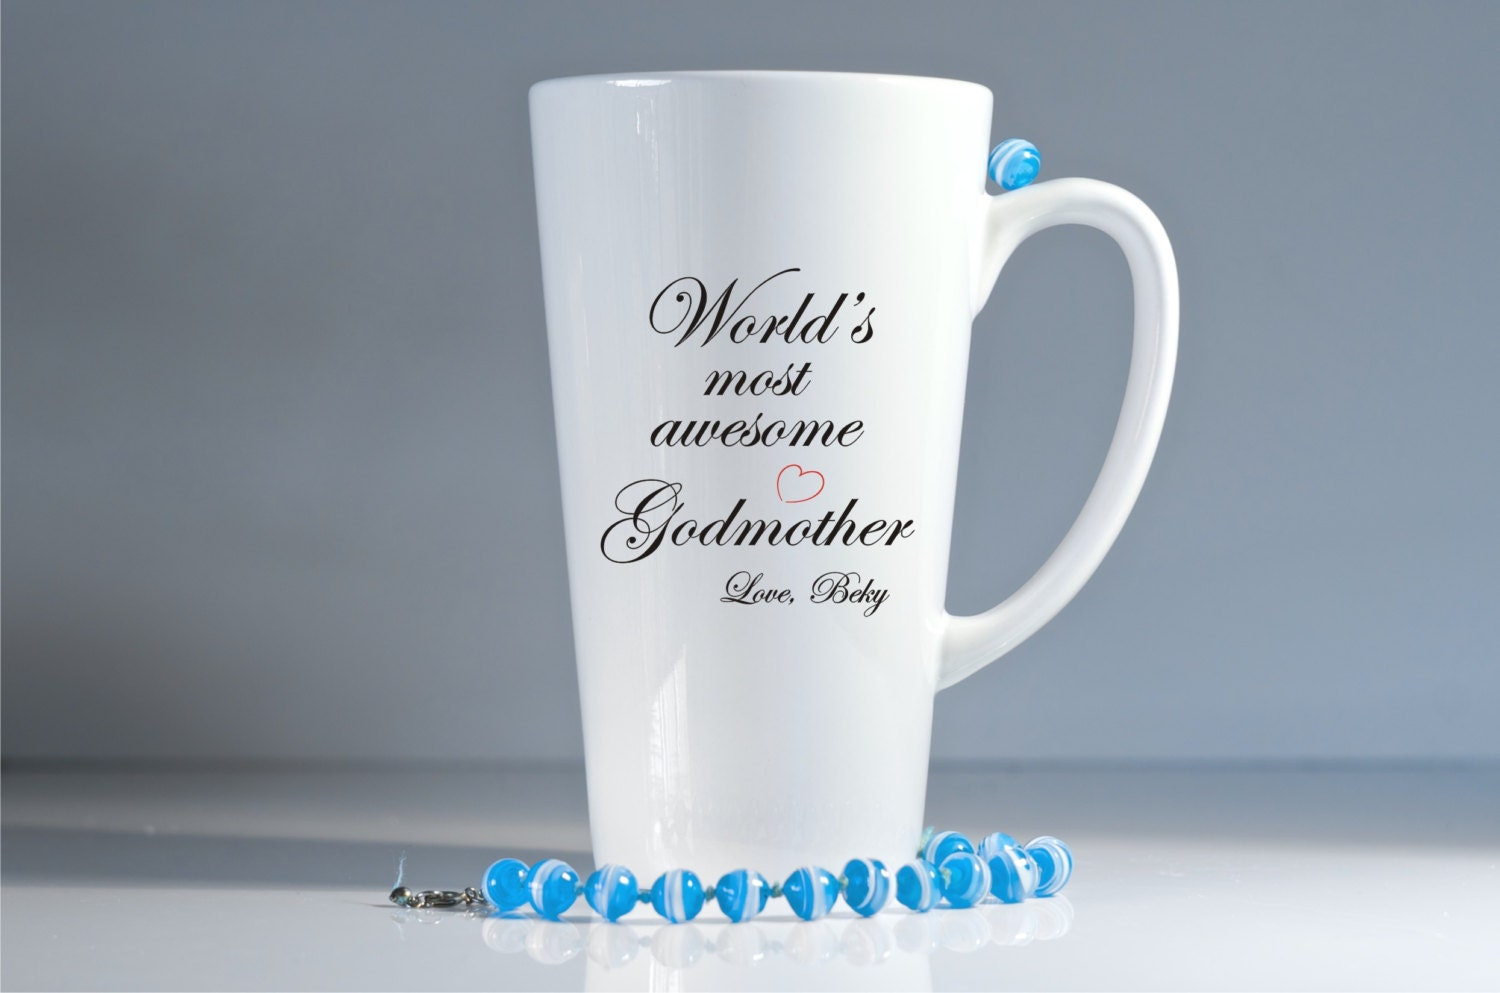 Godmother Gift Godparent Gift Personalized Gift For: Personalized Godmother Mug-Godparents Gift-Godmother